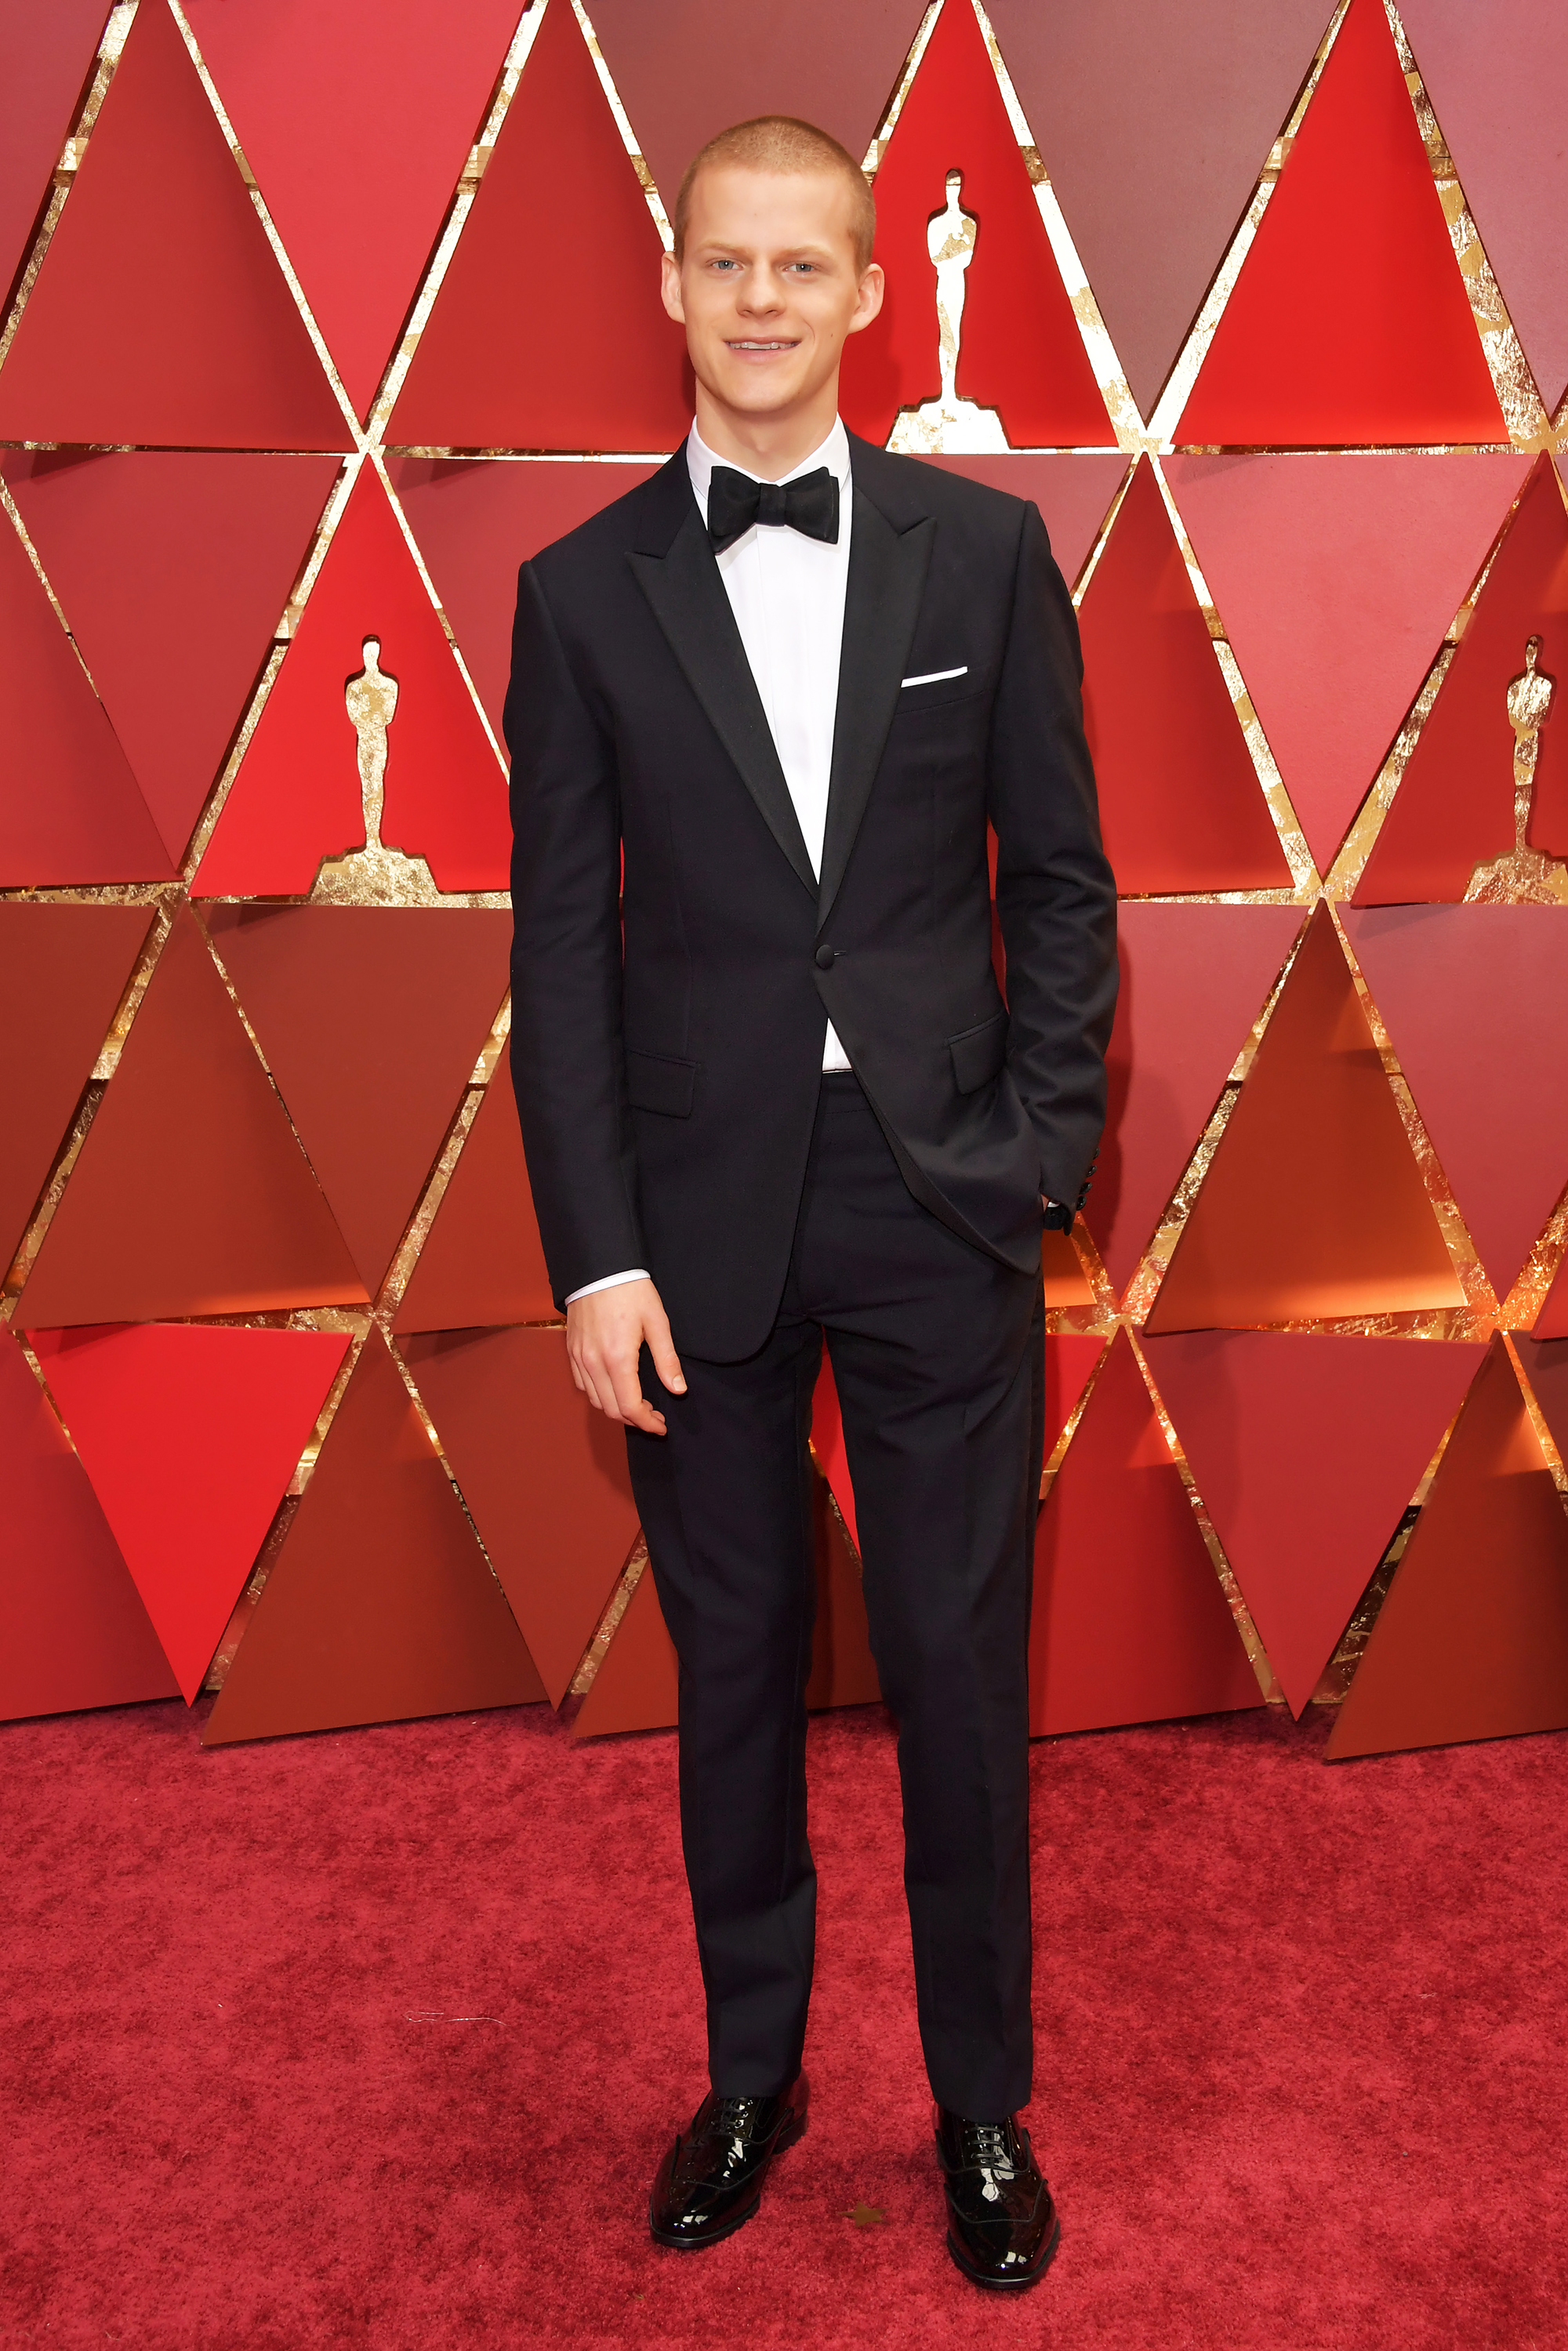 Lucas Hedges on the red carpet for the 89th Oscars, on Feb. 26, 2017 in Hollywood, Calif.